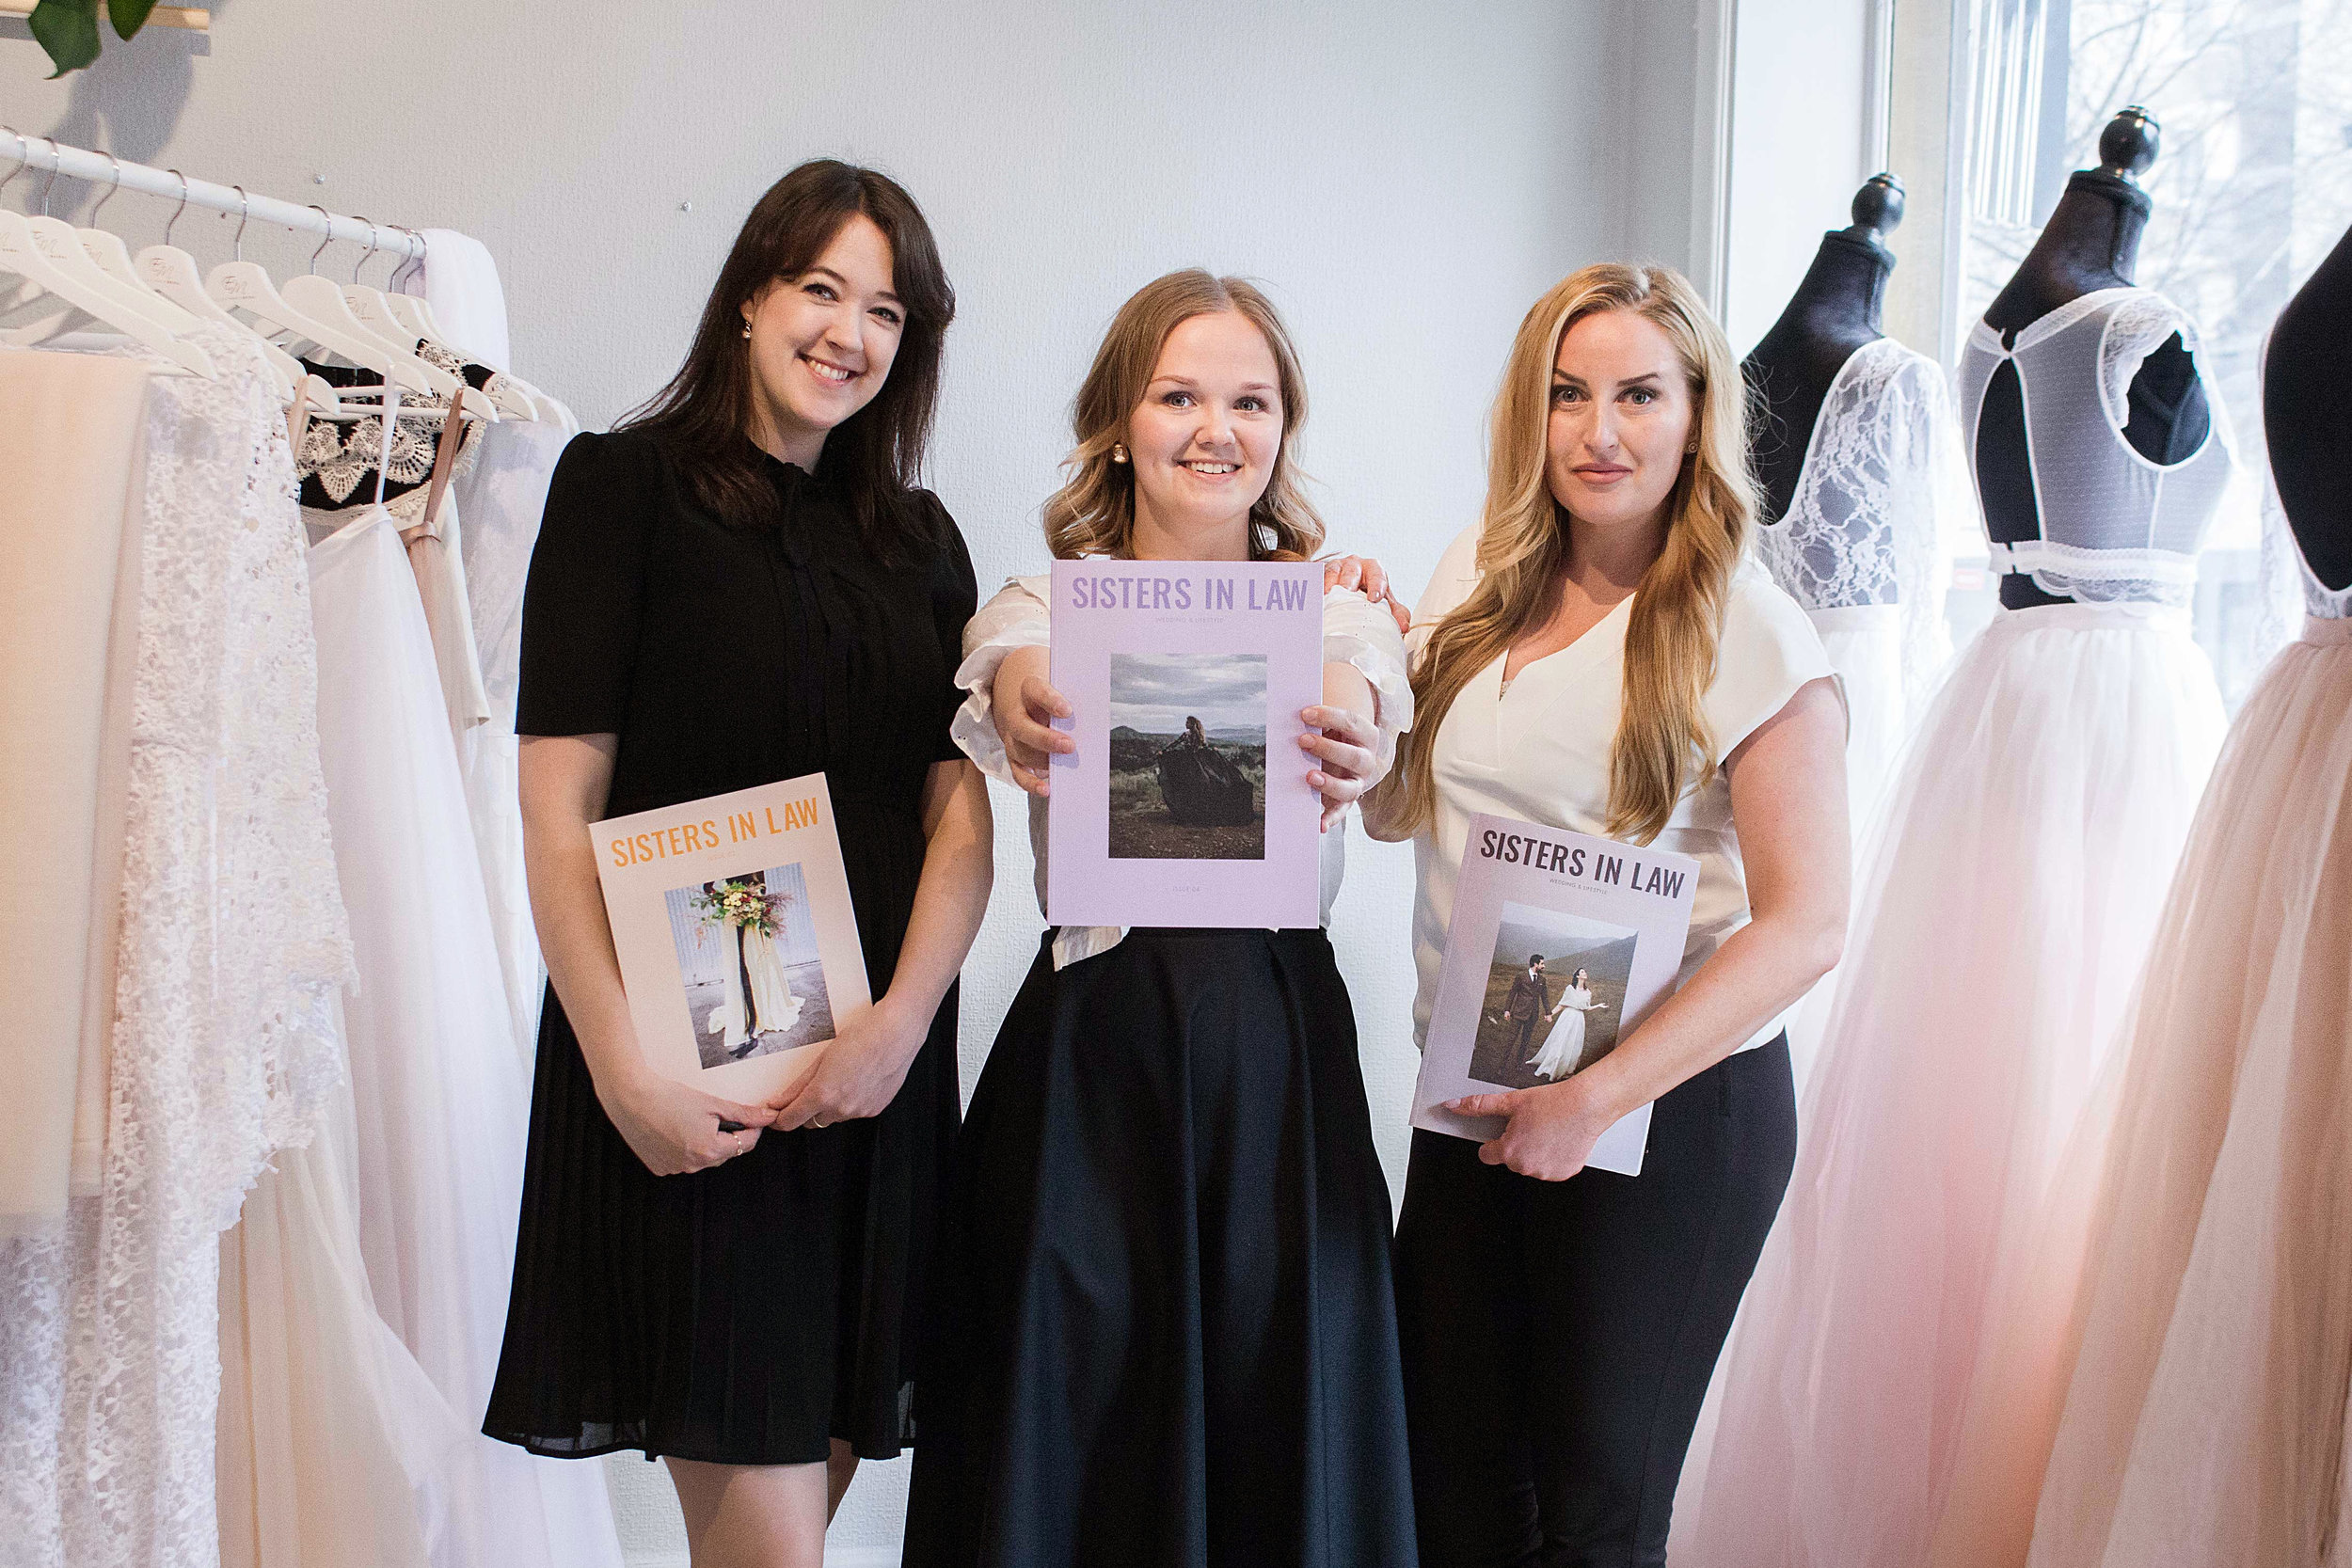 Zanna Metzer (Founder of Sisters in Law), Kristina Grahn (Designer at Sisters in Law), Evelina Boström (Eventail Invest AB / Stylelevel.com)